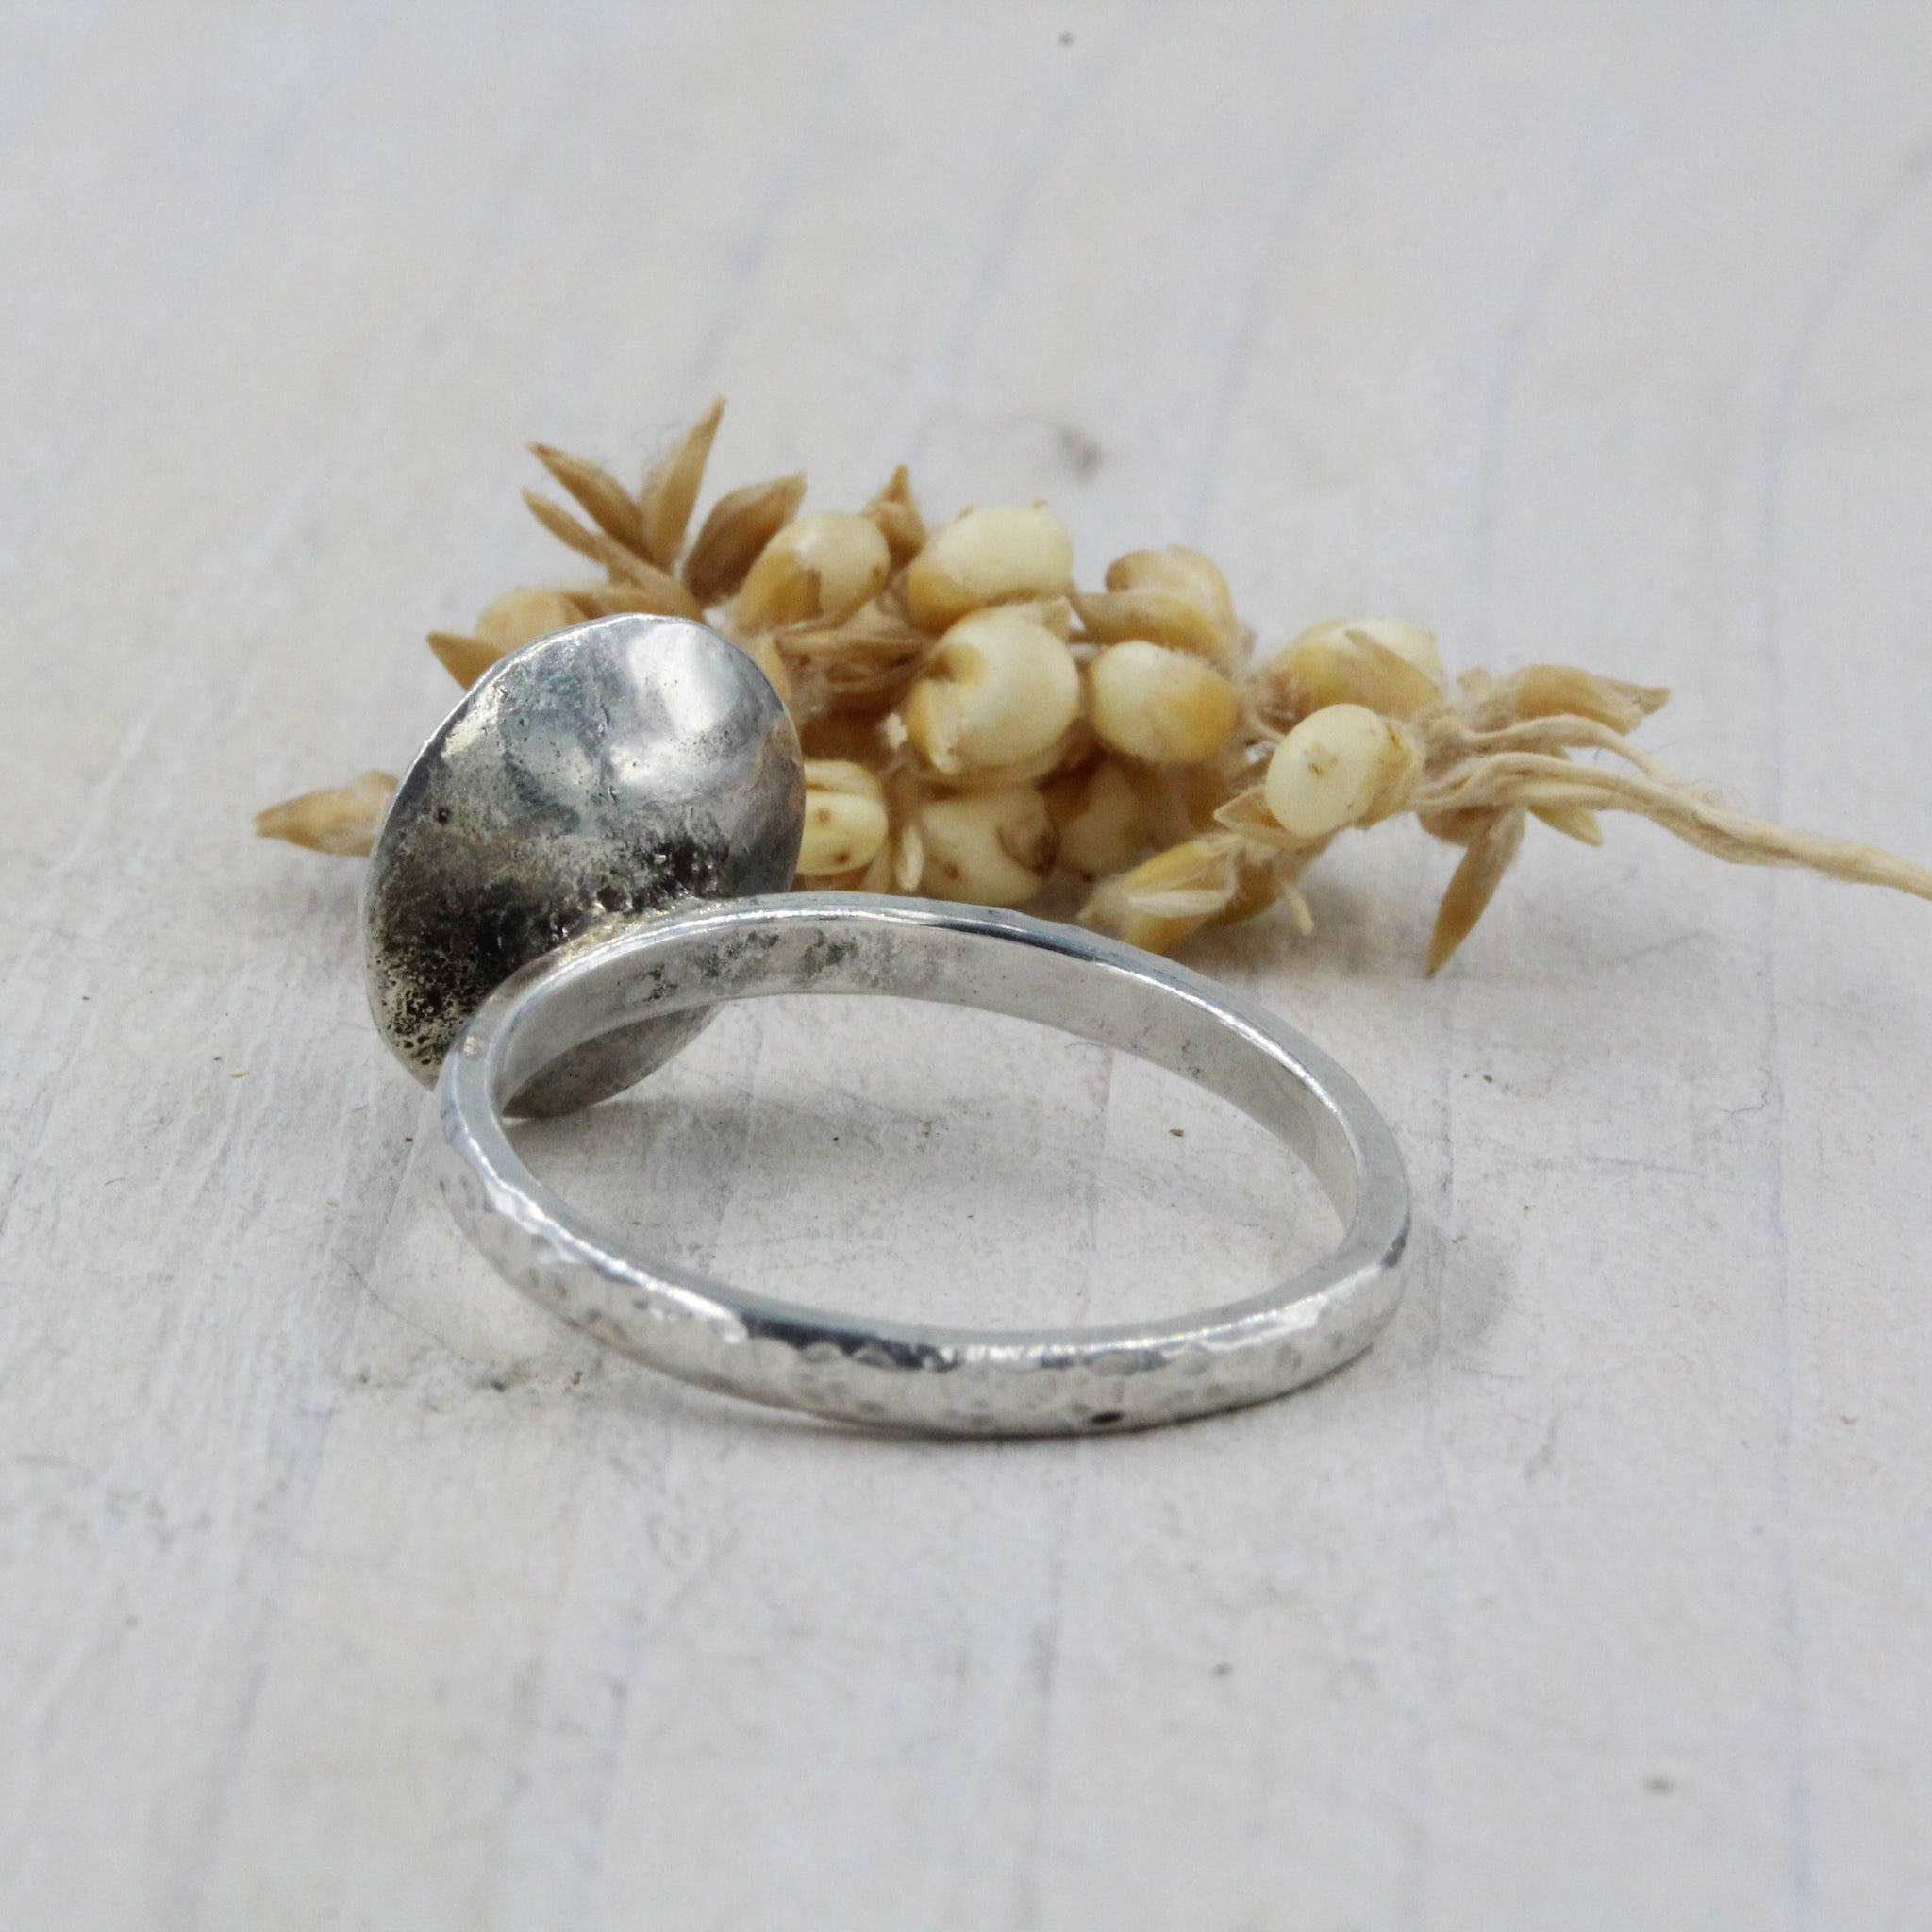 Exclusive 'Pebbles on the Beach' inspired ring, handcrafted in sterling silver, by Gemma Tremayne Jewellery. The ring features tiny silver pebbles, representing pebbles on the beach.